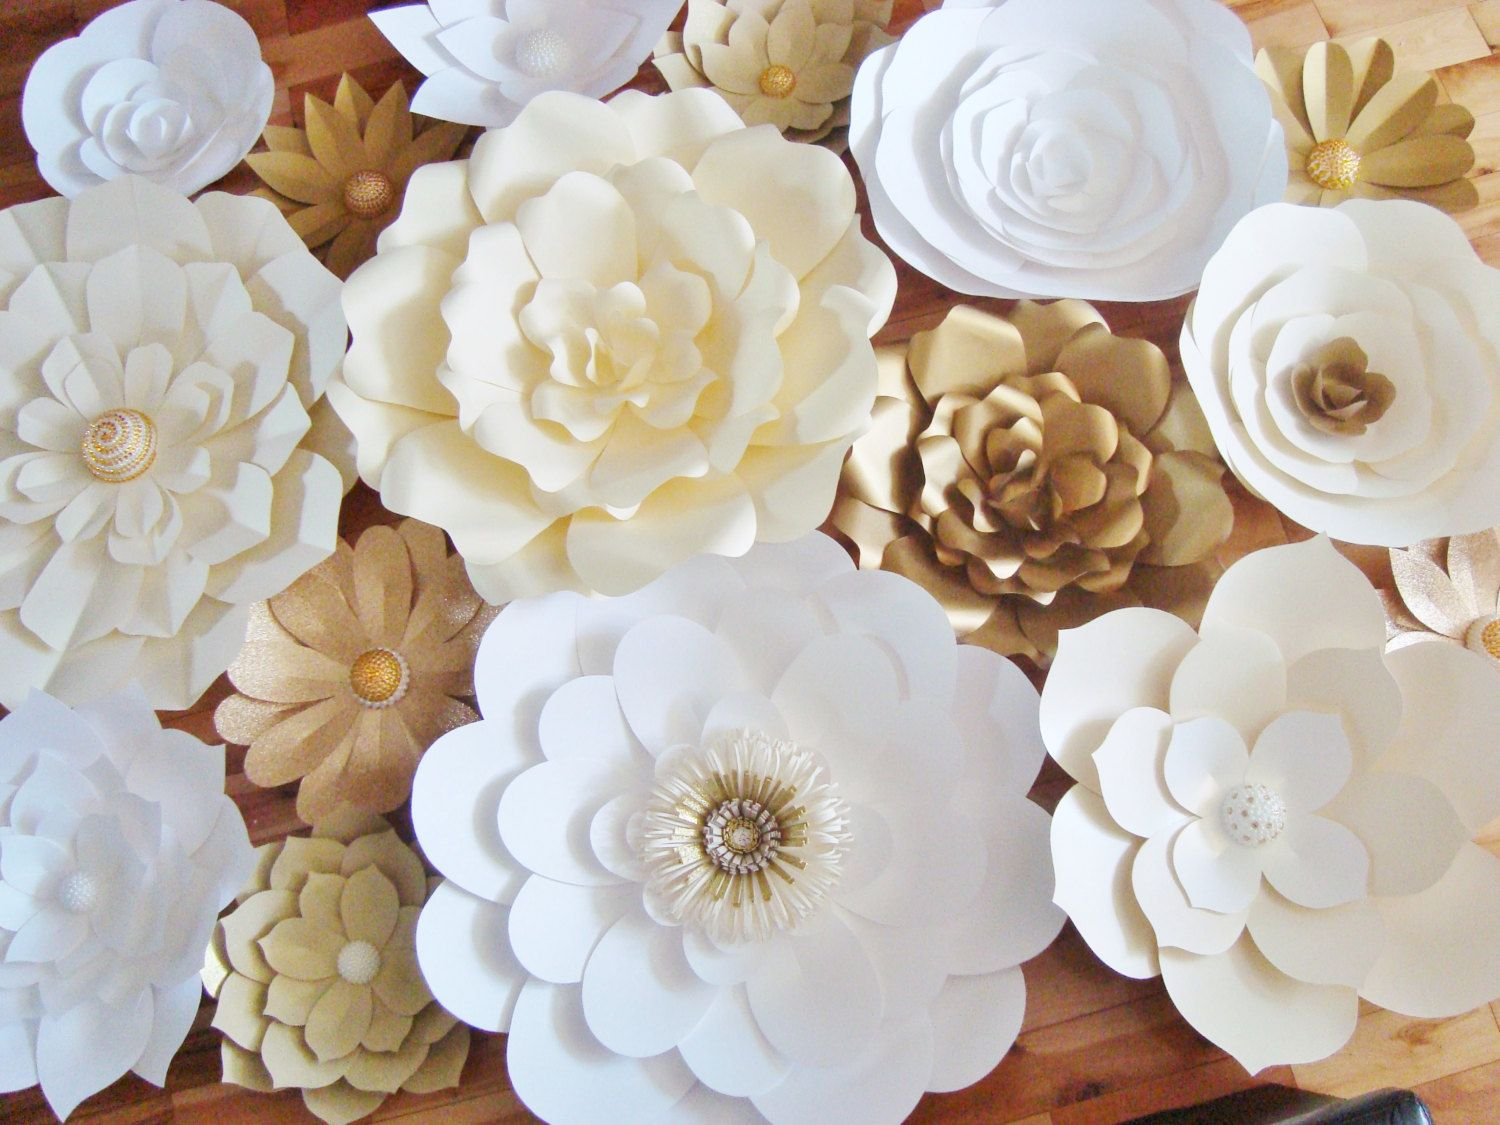 When i was getting married i was constantly inspired by every paper flowers paper flowers backdrop wedding by miogallery fondo de flor de papel diy set de 30 por dreameventsinpaper dhlflorist Choice Image